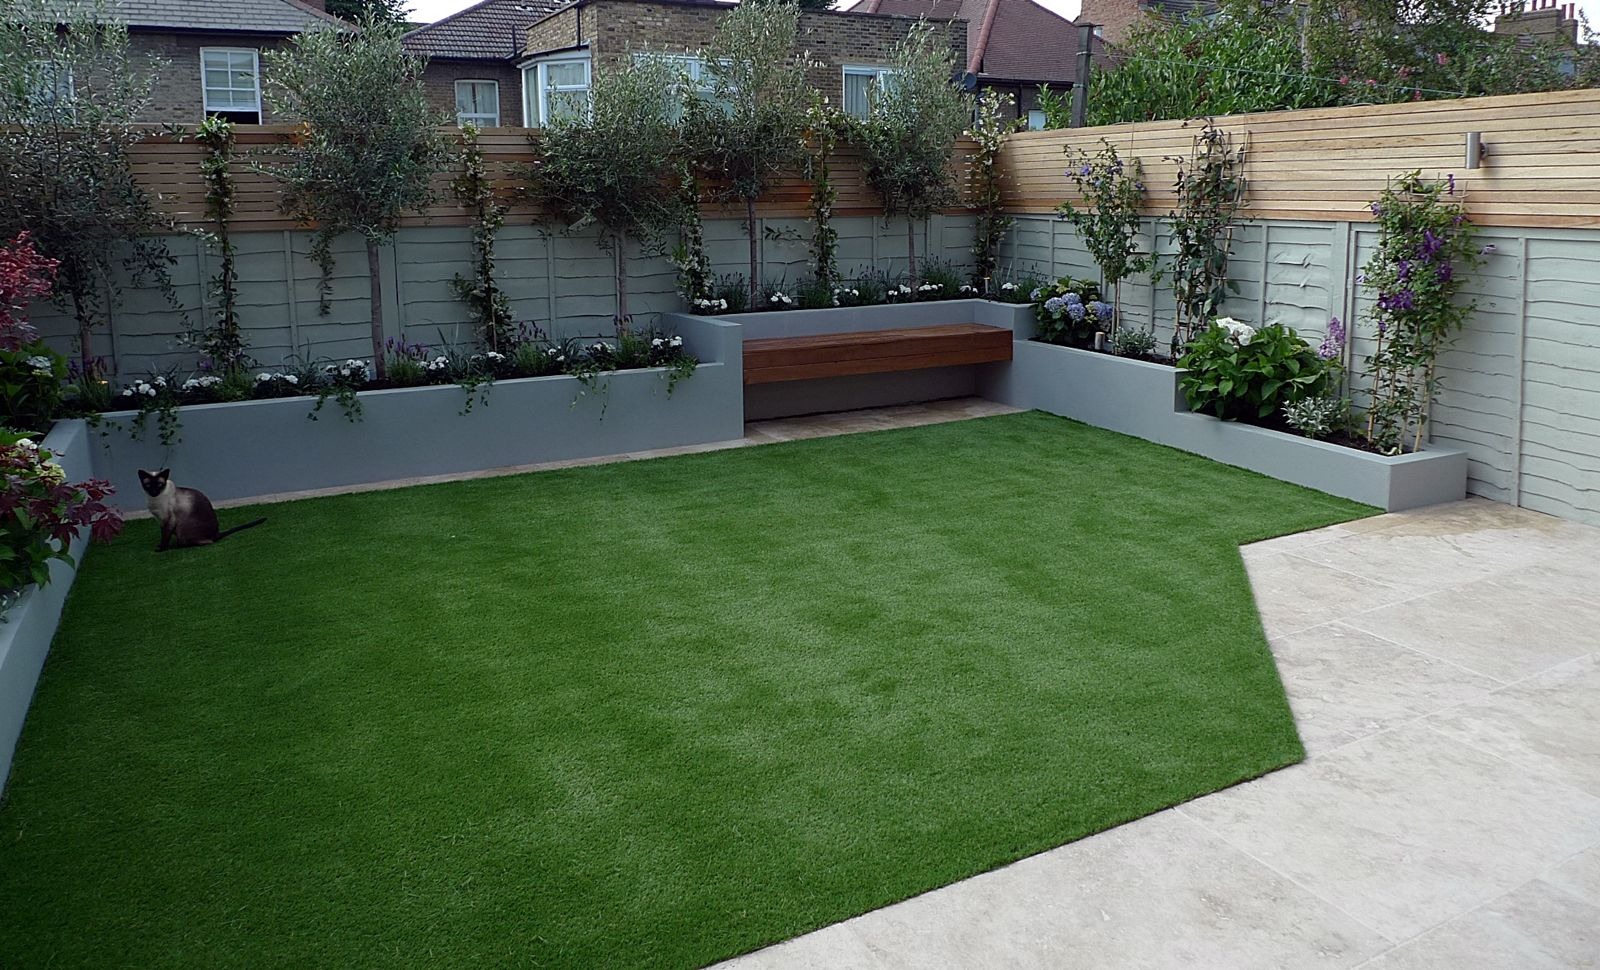 Artificial Grass Garden Designs square off the front curve line of the front garden j Small Garden Design Raised Beds Artificial Grass Travertine